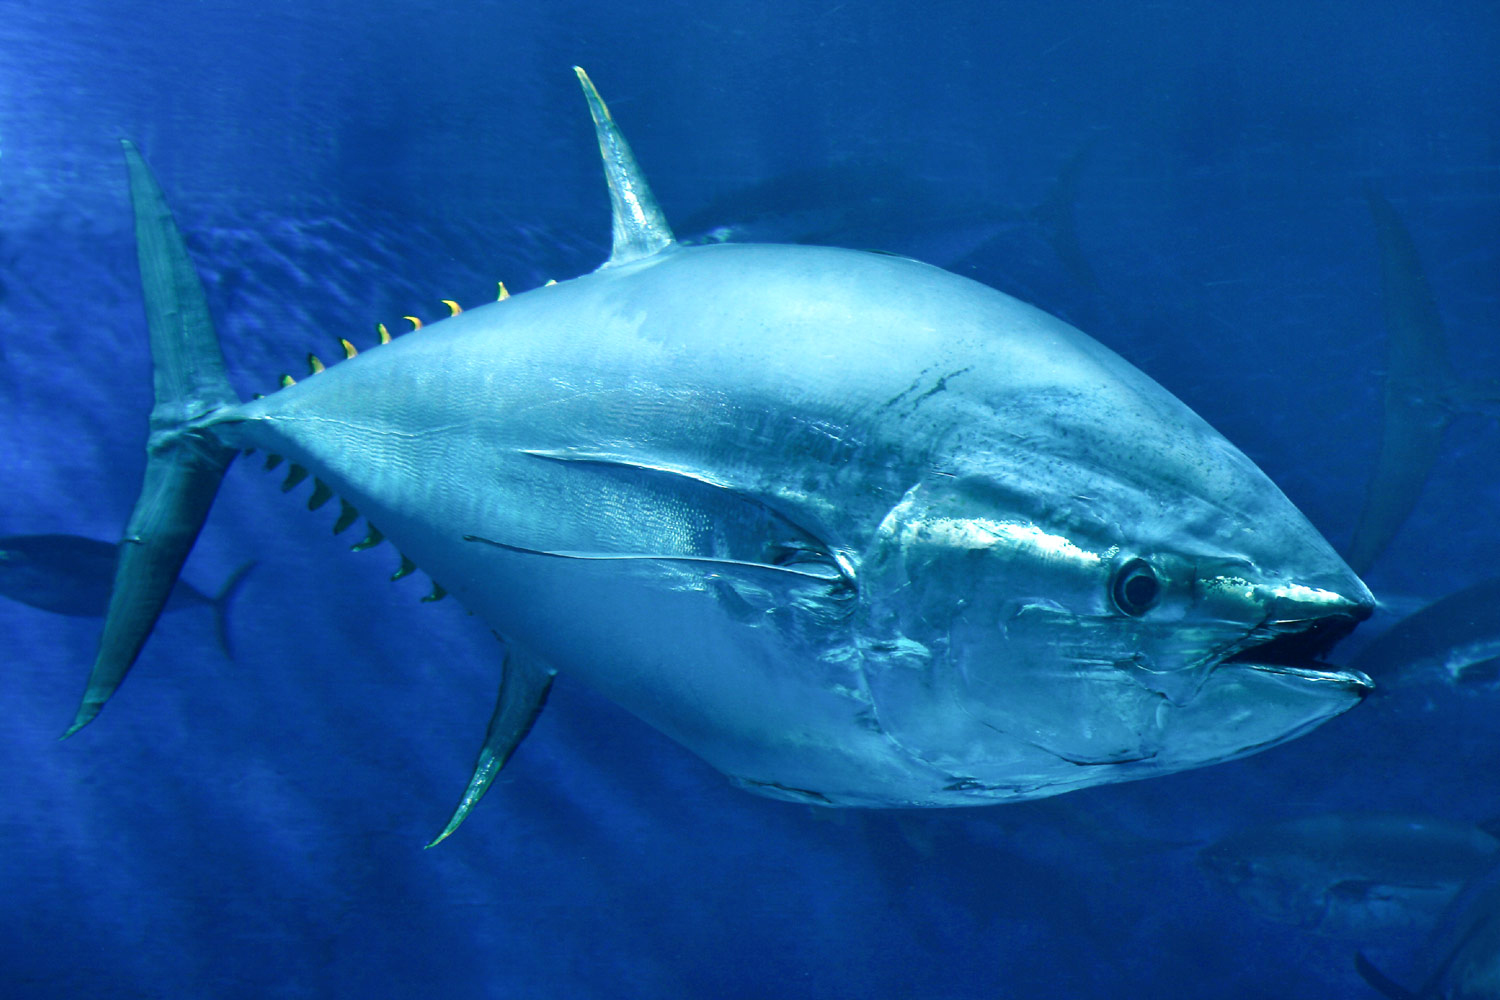 Researchers discover biological hydraulic system in tuna fins